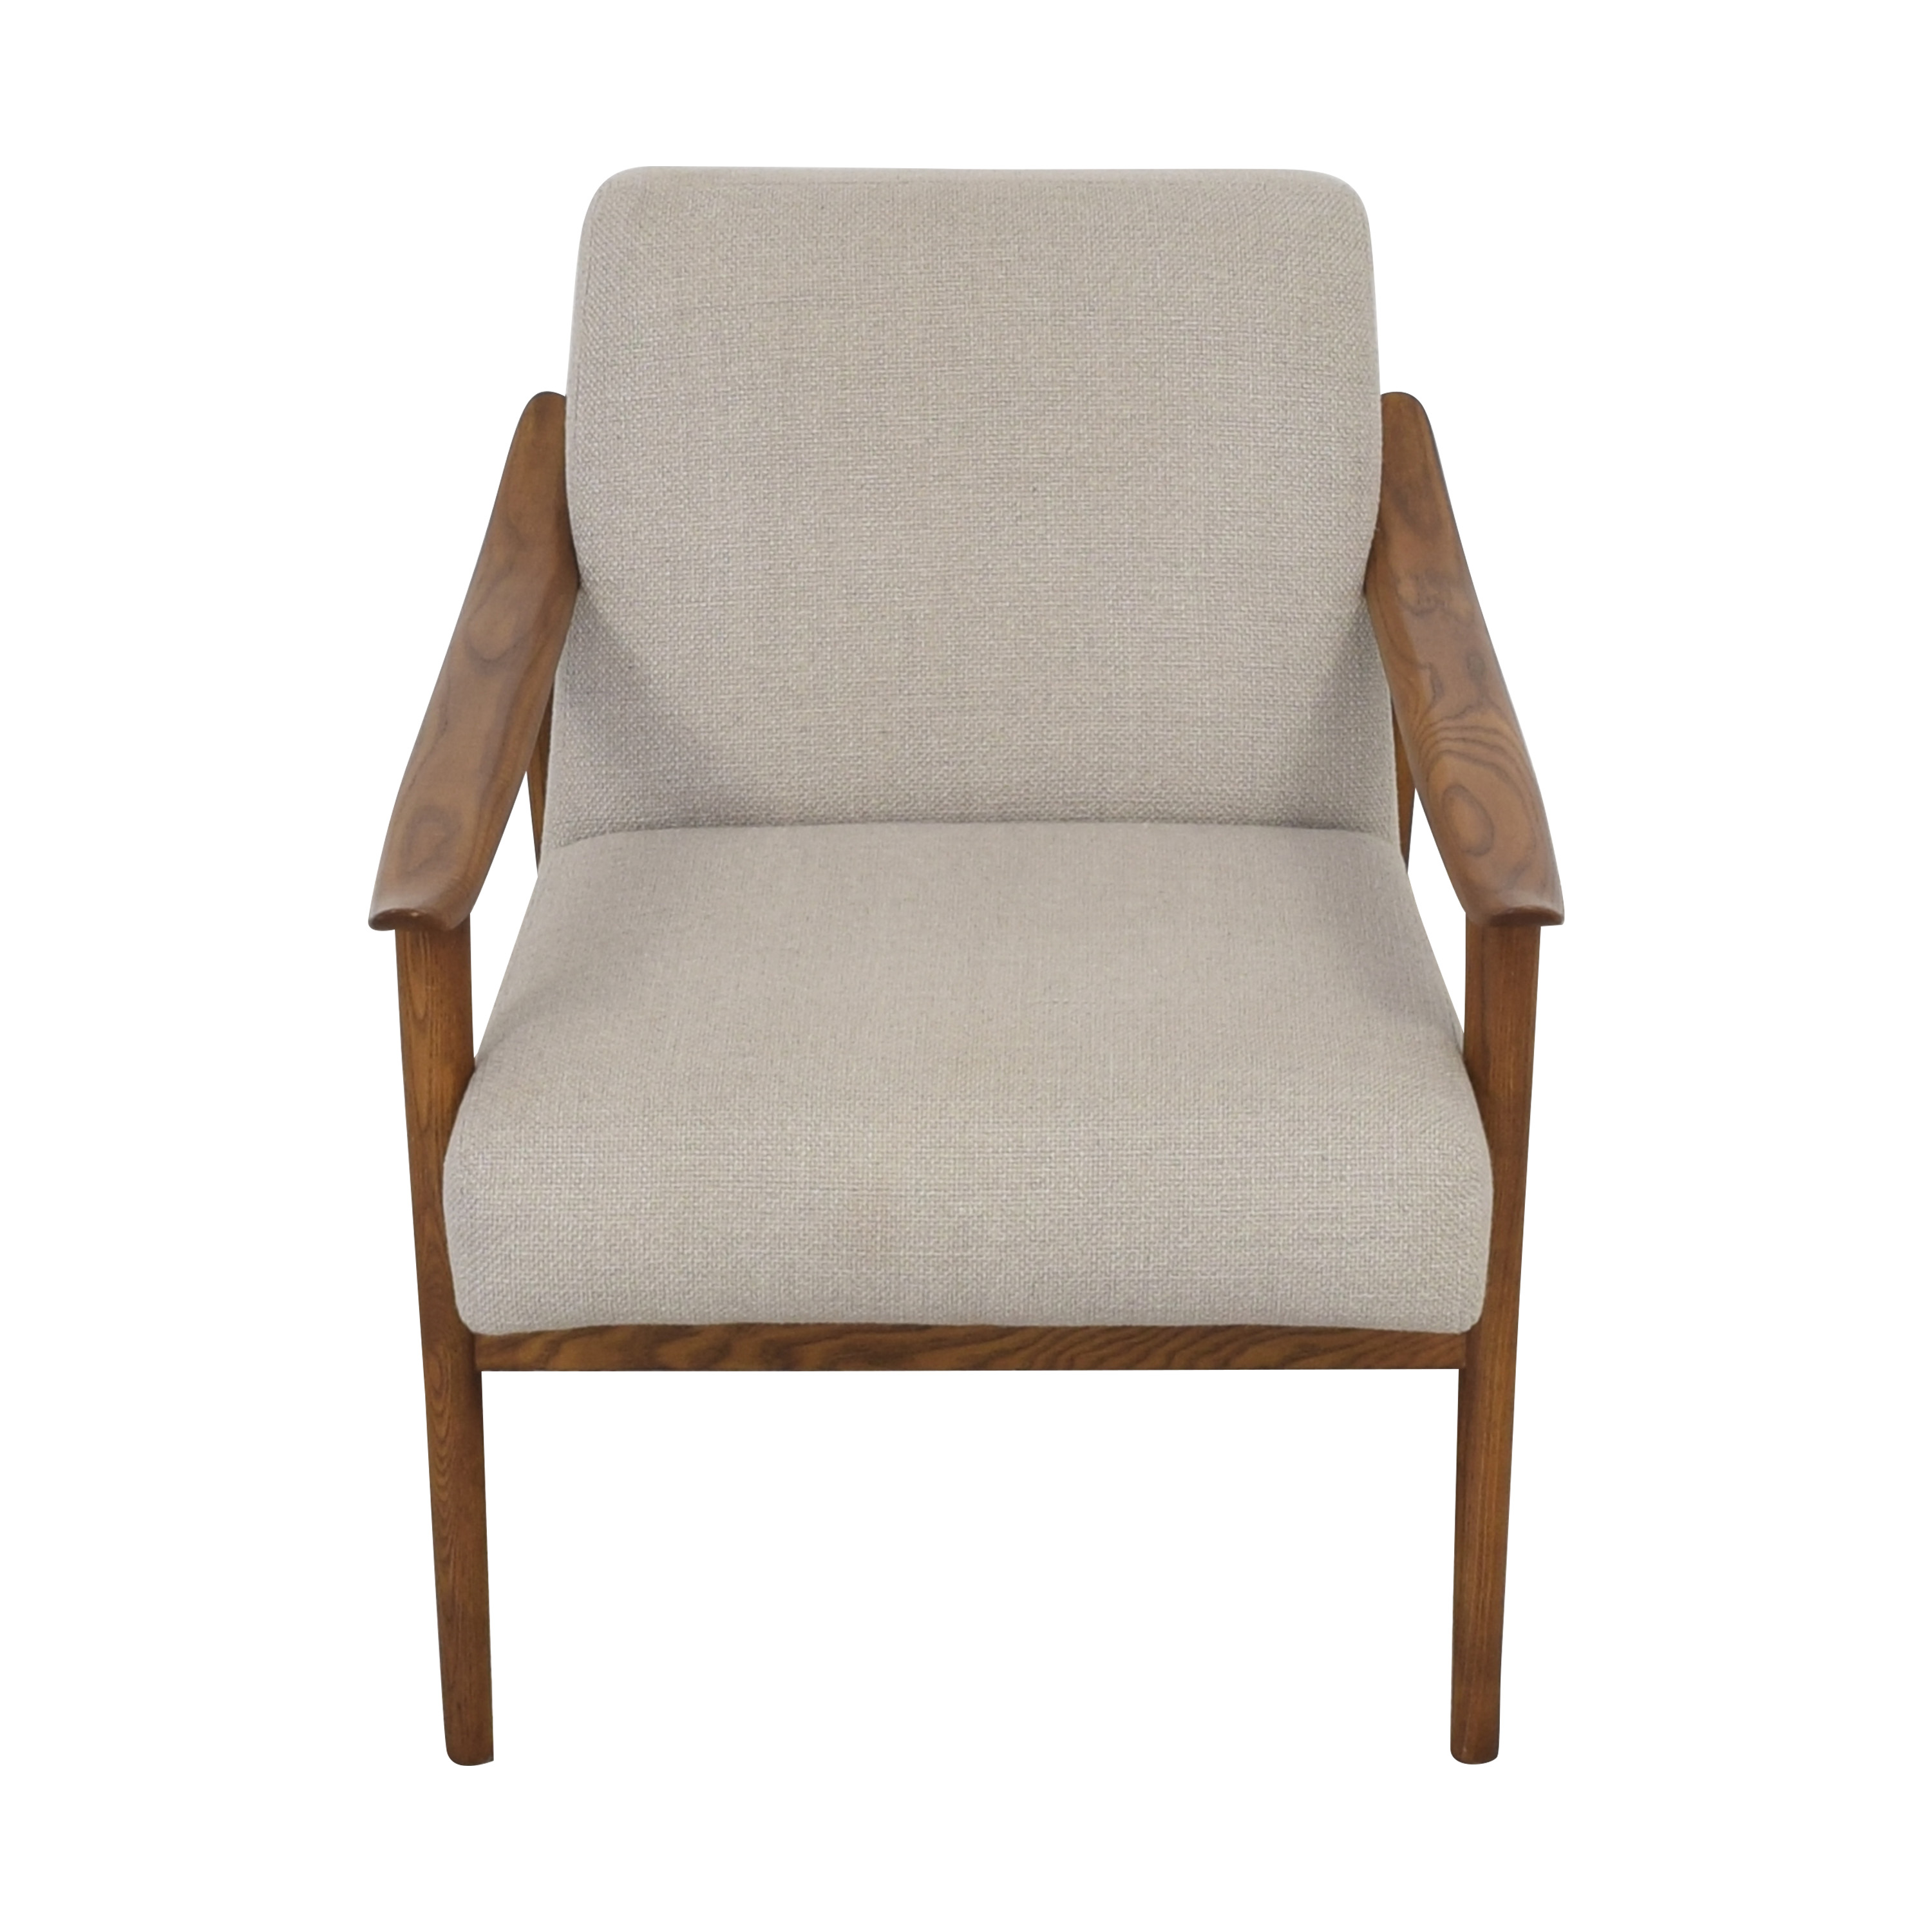 West Elm West Elm Mid-Century Show Wood Chair nyc